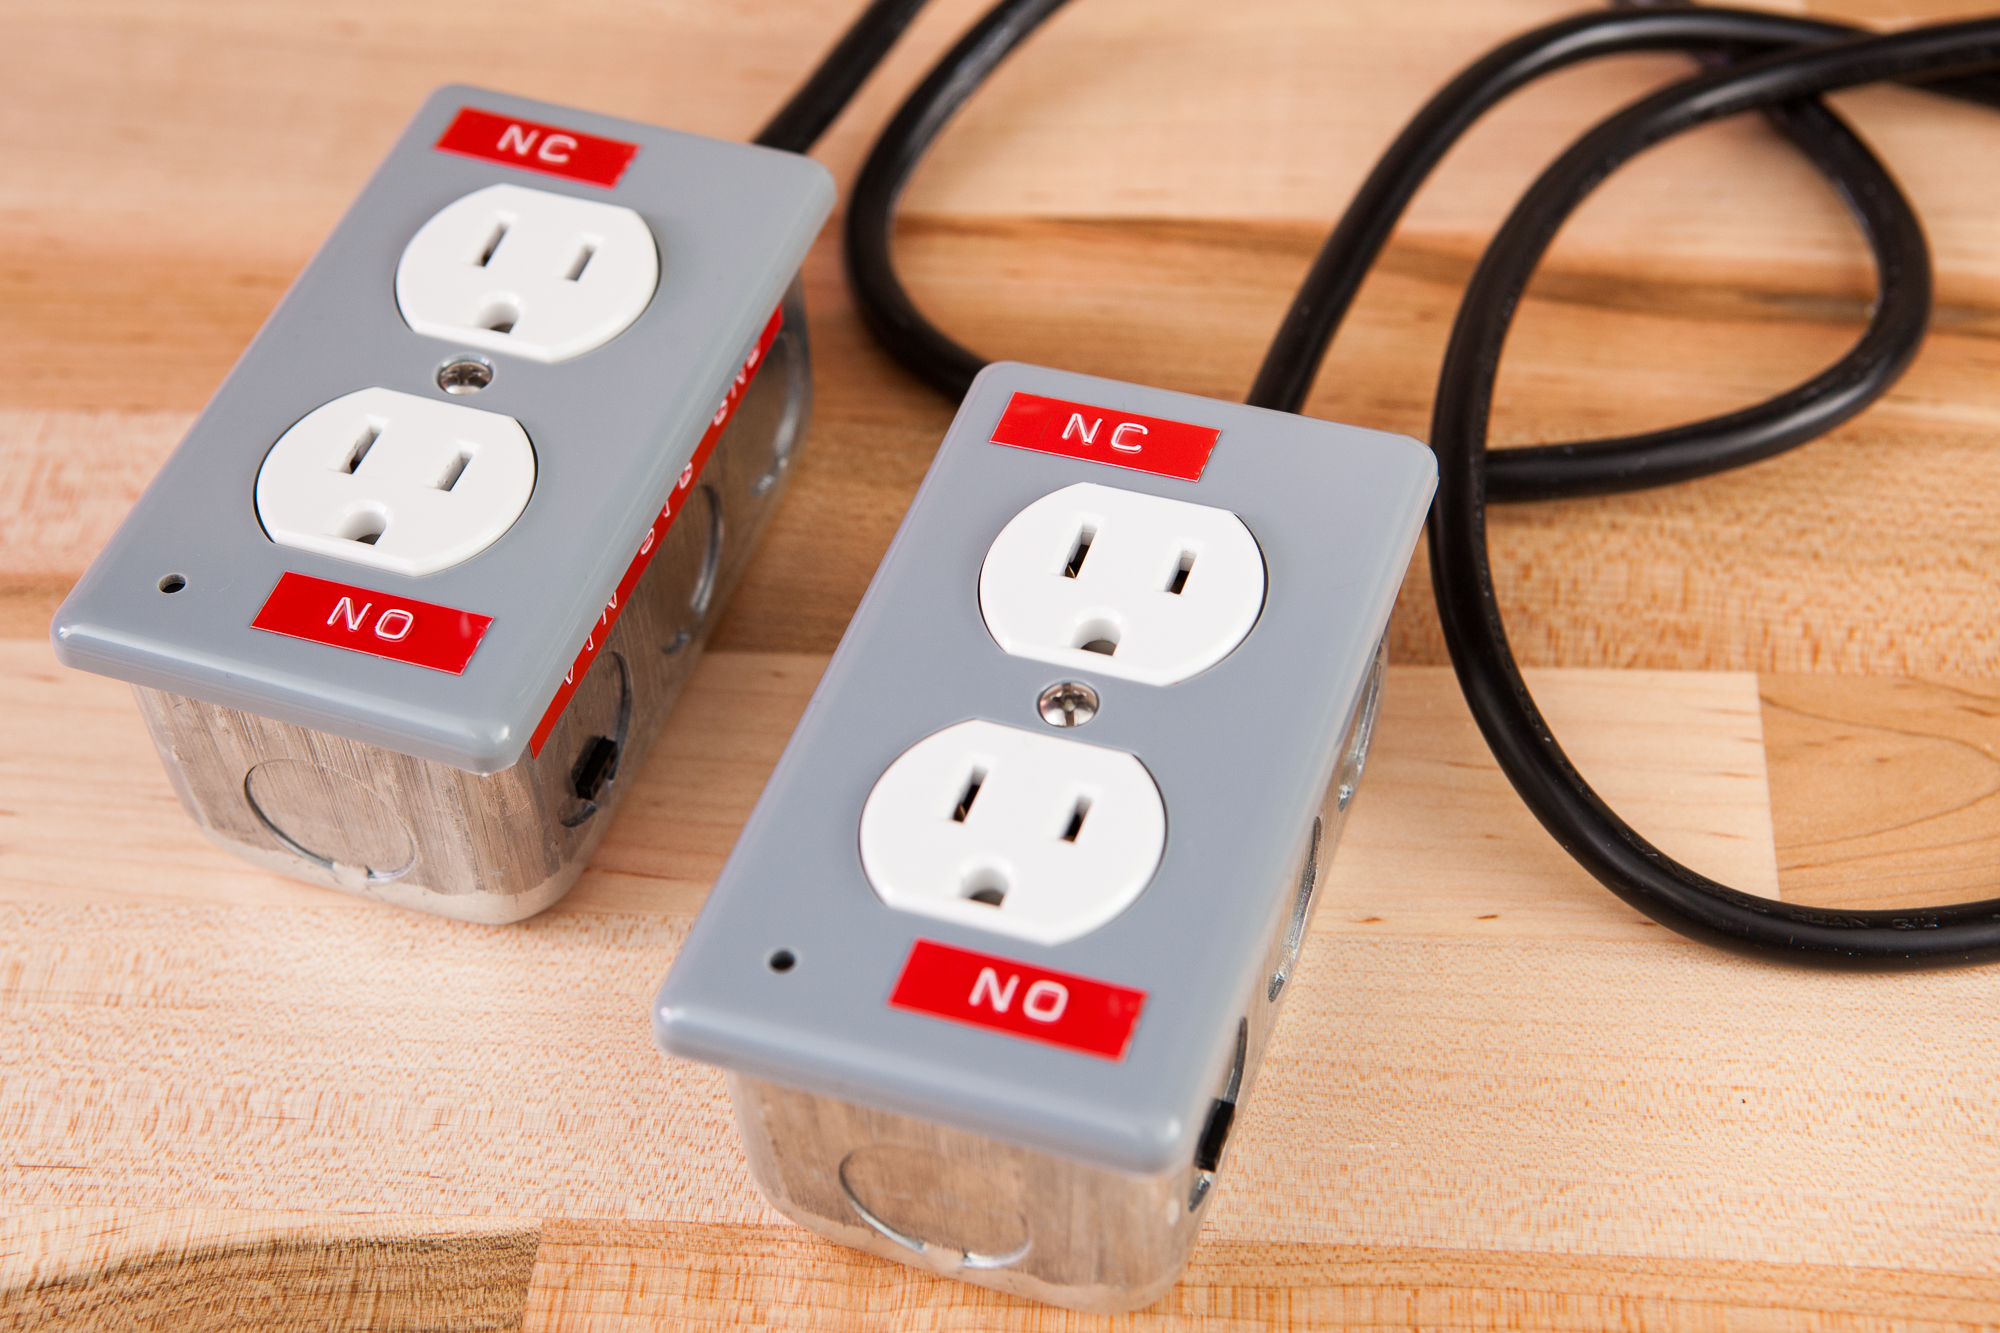 DIY Relay Boxes for Controlling 120V Power with a Microcontroller